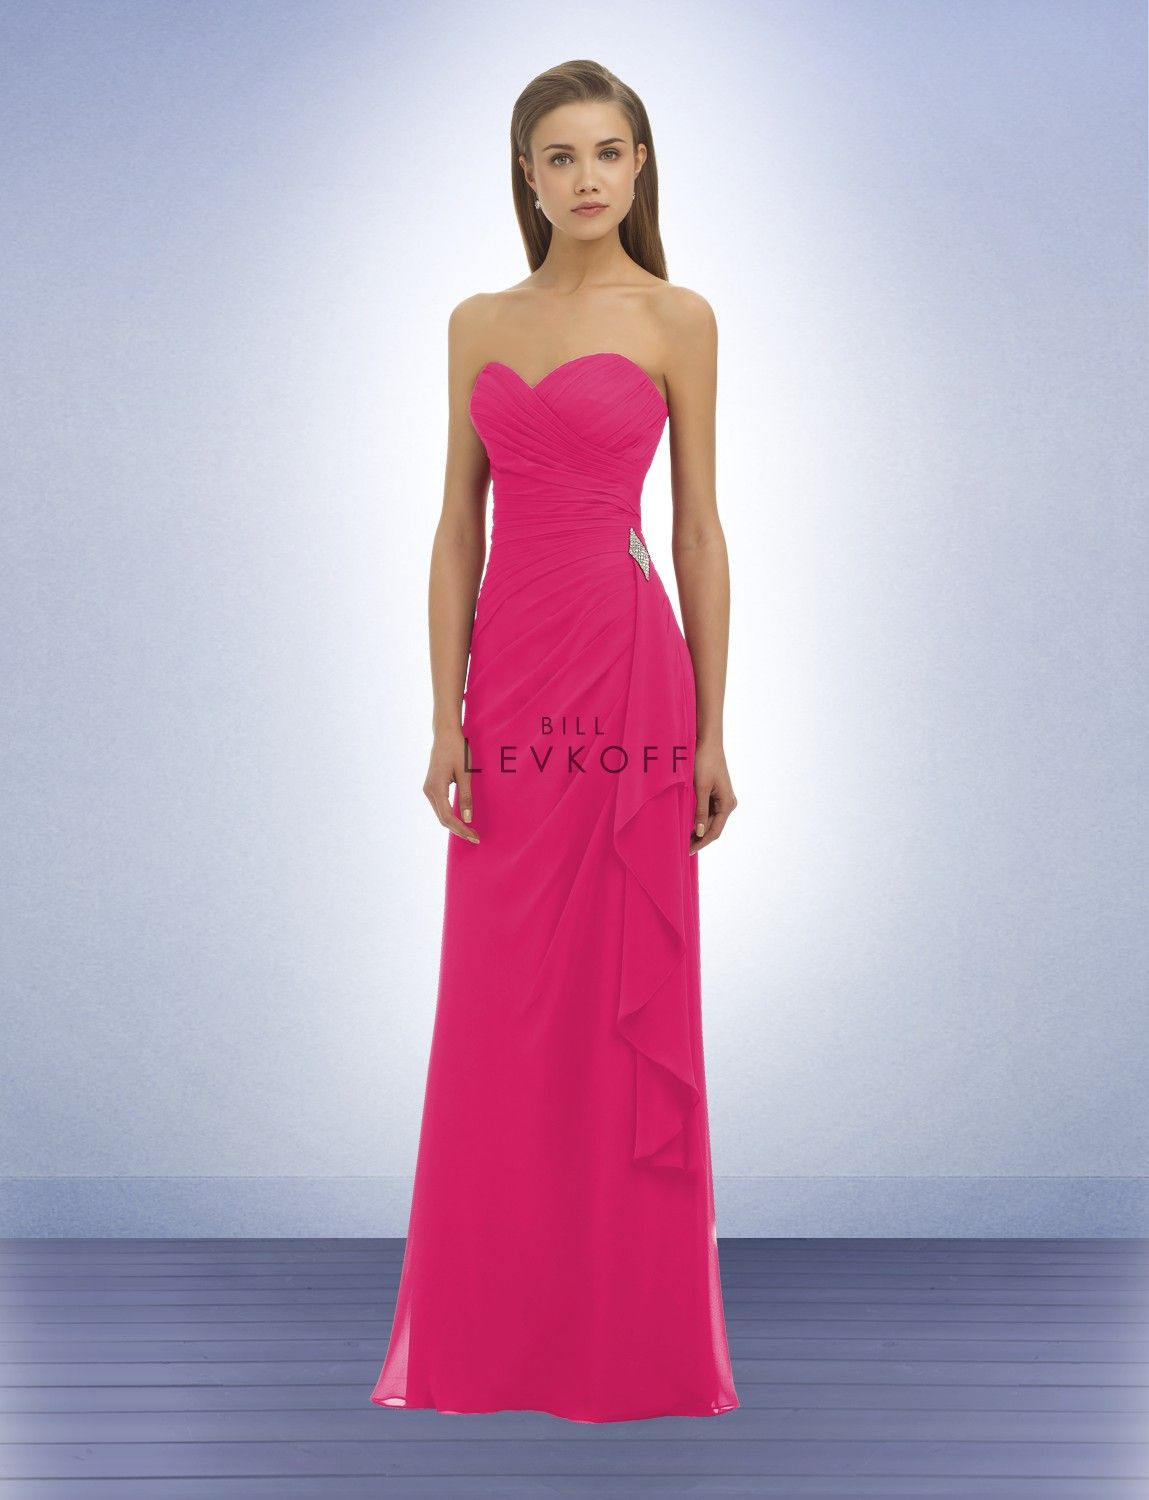 Bill levkoff bridesmaid dress style 330 bridesmaids pinterest bill levkoff bridesmaid dress style 330 ombrellifo Image collections